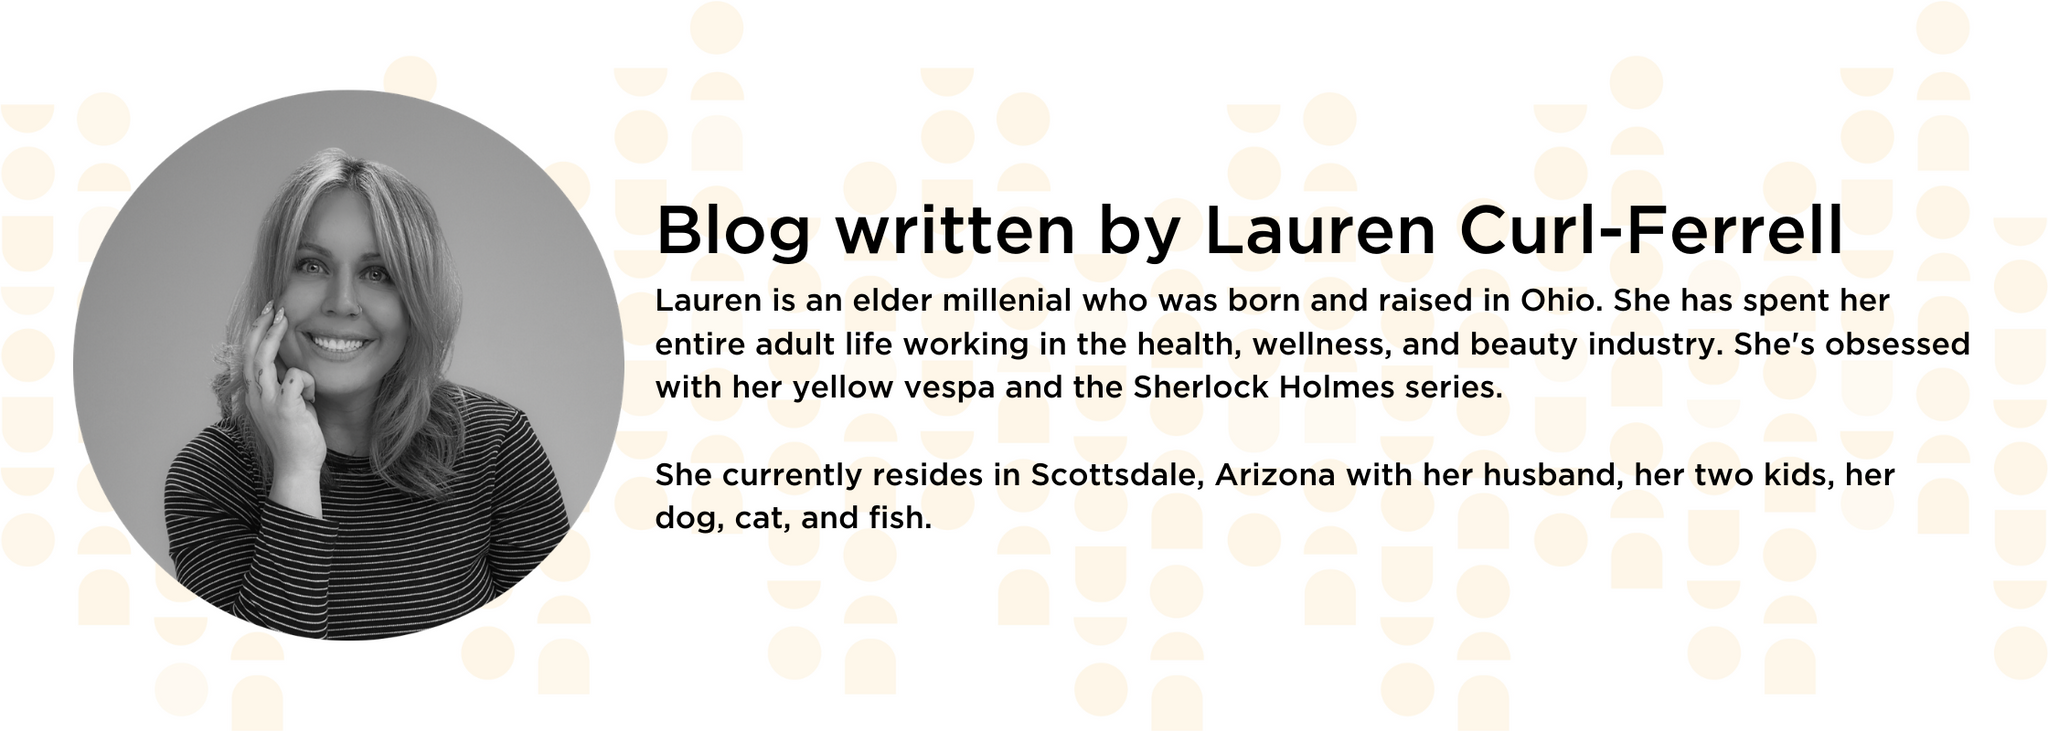 Blog written by Lauren Curl-Ferrell Lauren is an elder millenial who was born and raised in Ohio. She has spent her entire adult life working in the health, wellness, and beauty industry. She's obsessed with her yellow vespa and the Sherlock Holmes series.   She currently resides in Scottsdale, Arizona with her husband, her two kids, her dog, cat, and fish.